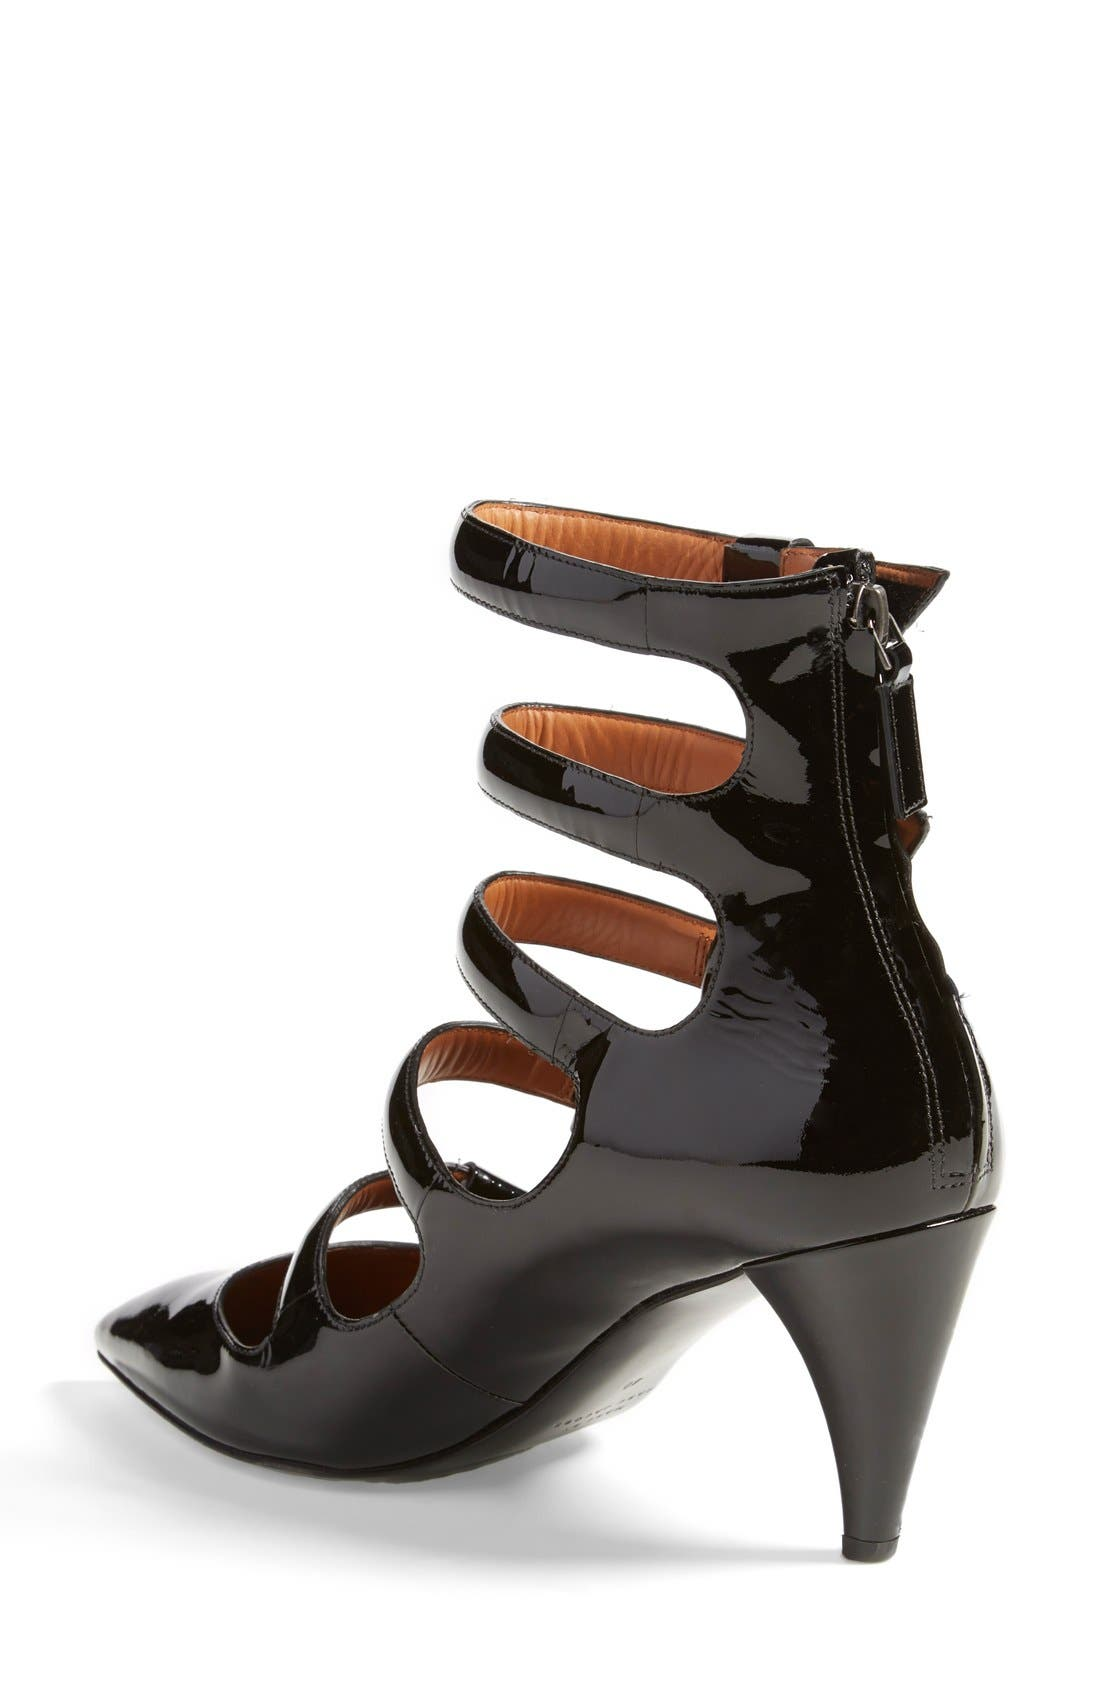 MARC JACOBS, MARC BY MARC JACOBS 'Runway' Pump, Alternate thumbnail 2, color, 001